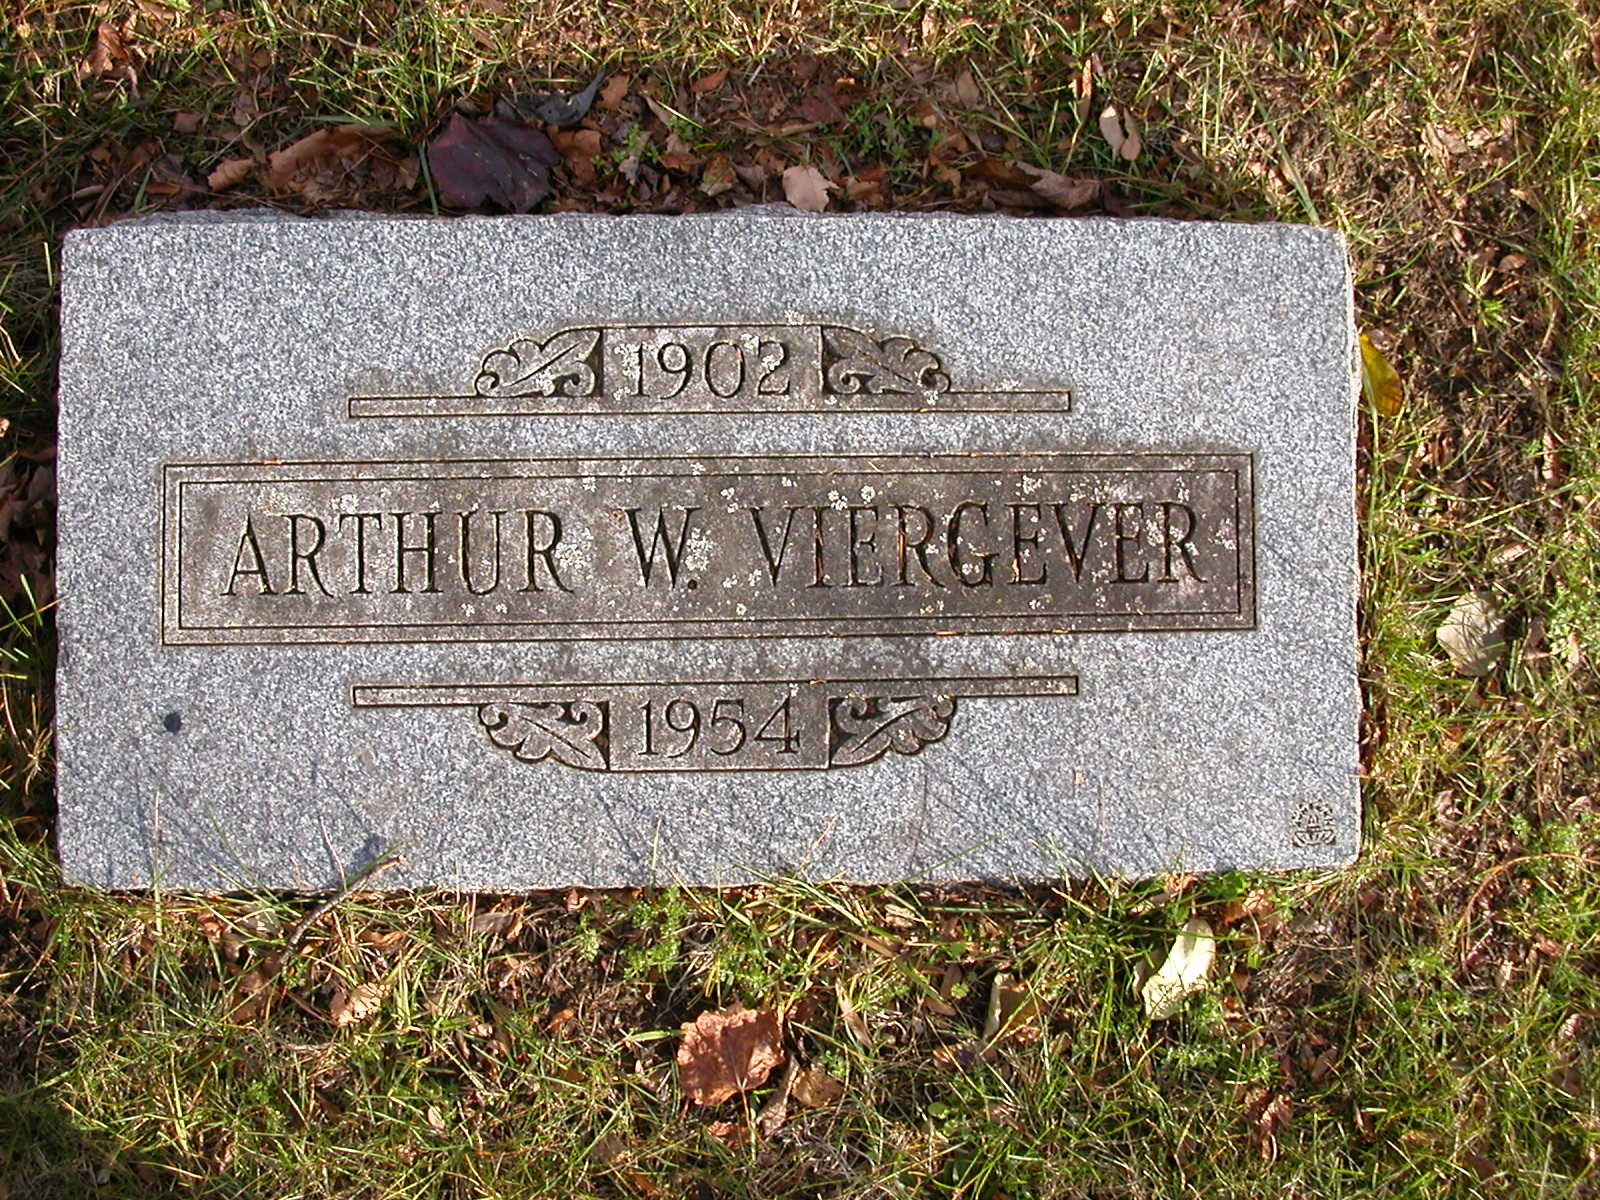 Arthur William Viergever 1902-1954